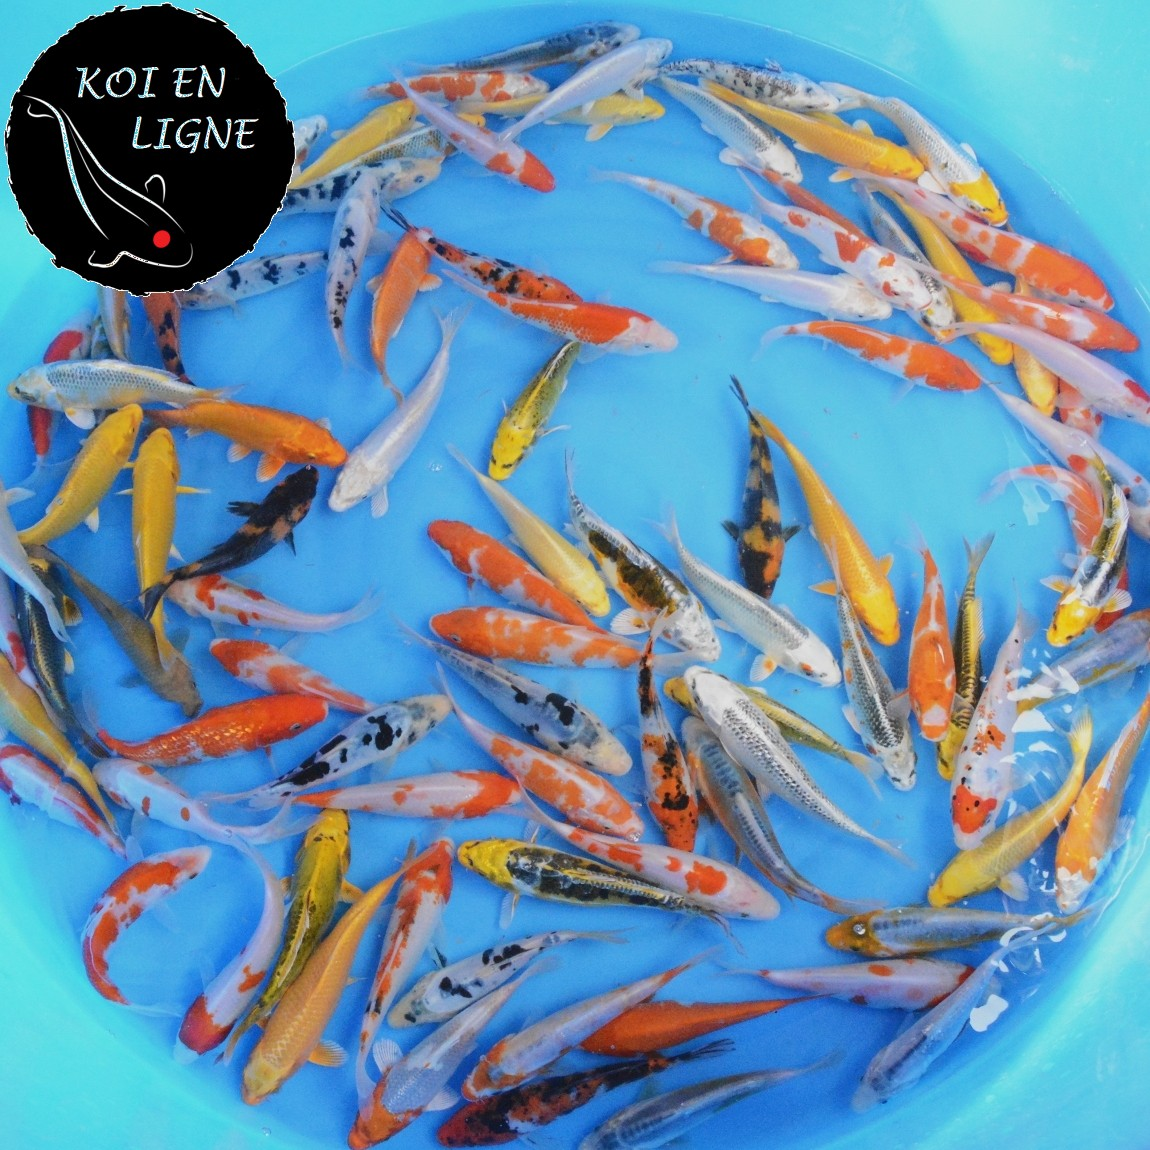 Mix ko premium 12 14cm lots de carpes koi koi france for Achat carpe koi en ligne